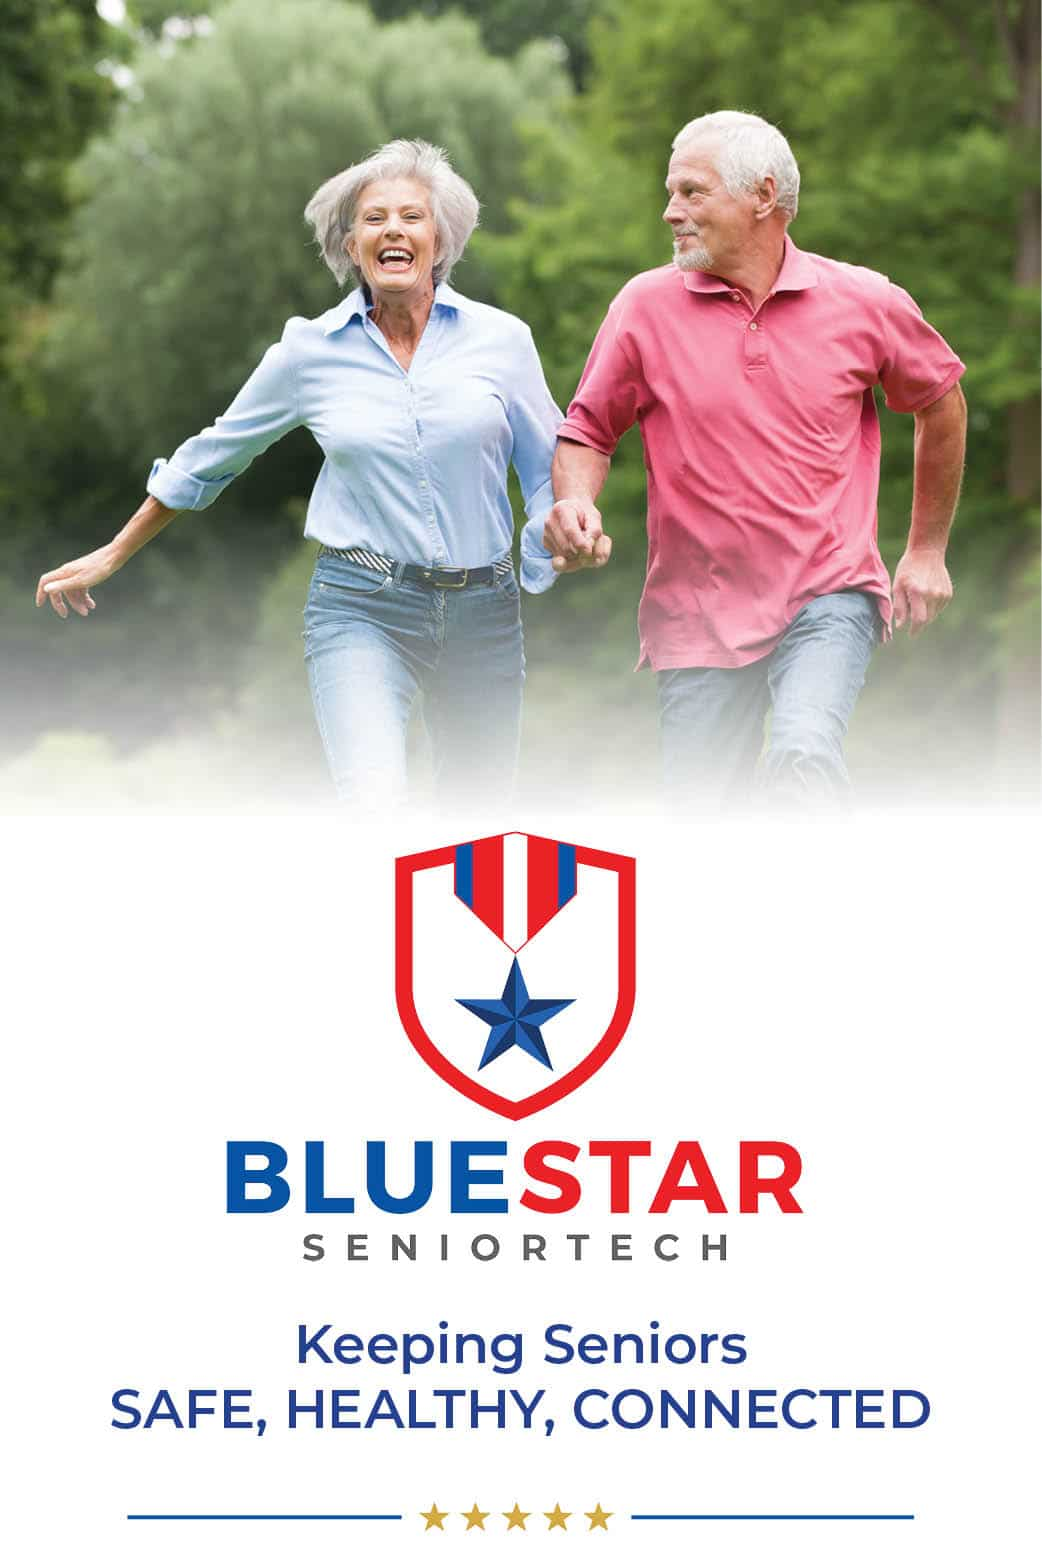 bluestar senior tech - shop safety products